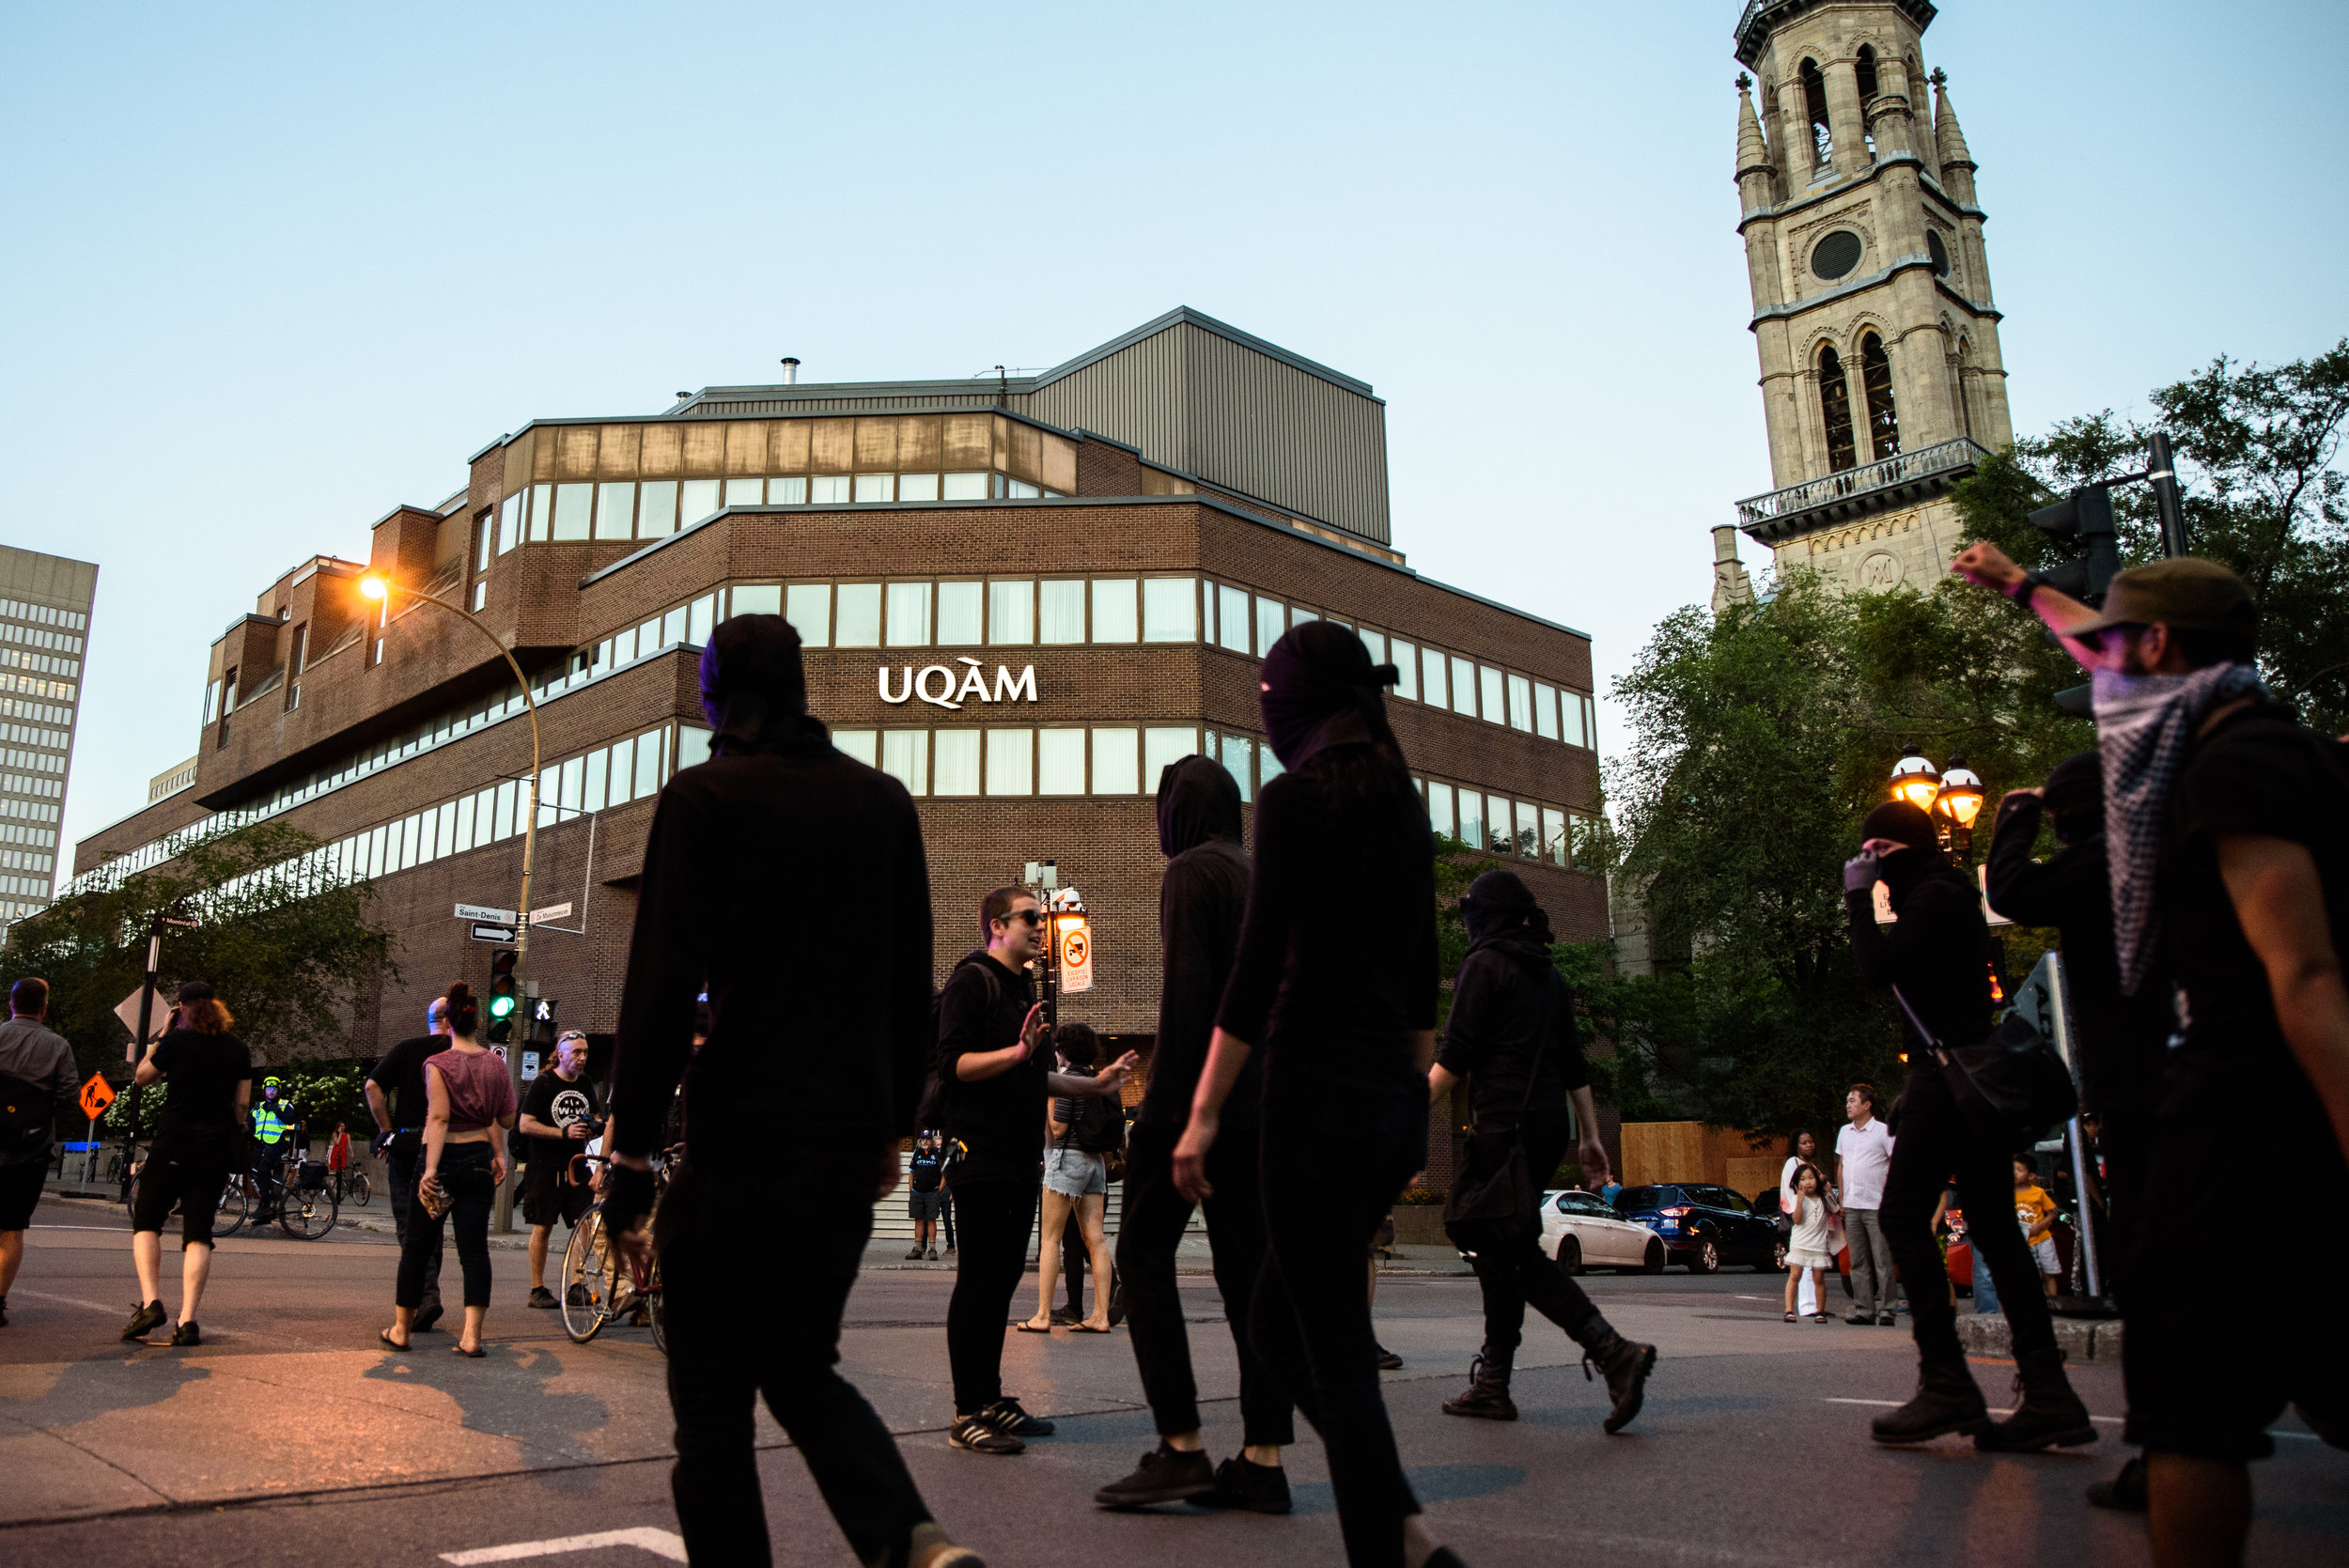 Black Bloc protesters in front a UQAM, a university well known in Montreal for the militancy of it's left leaning student associations.